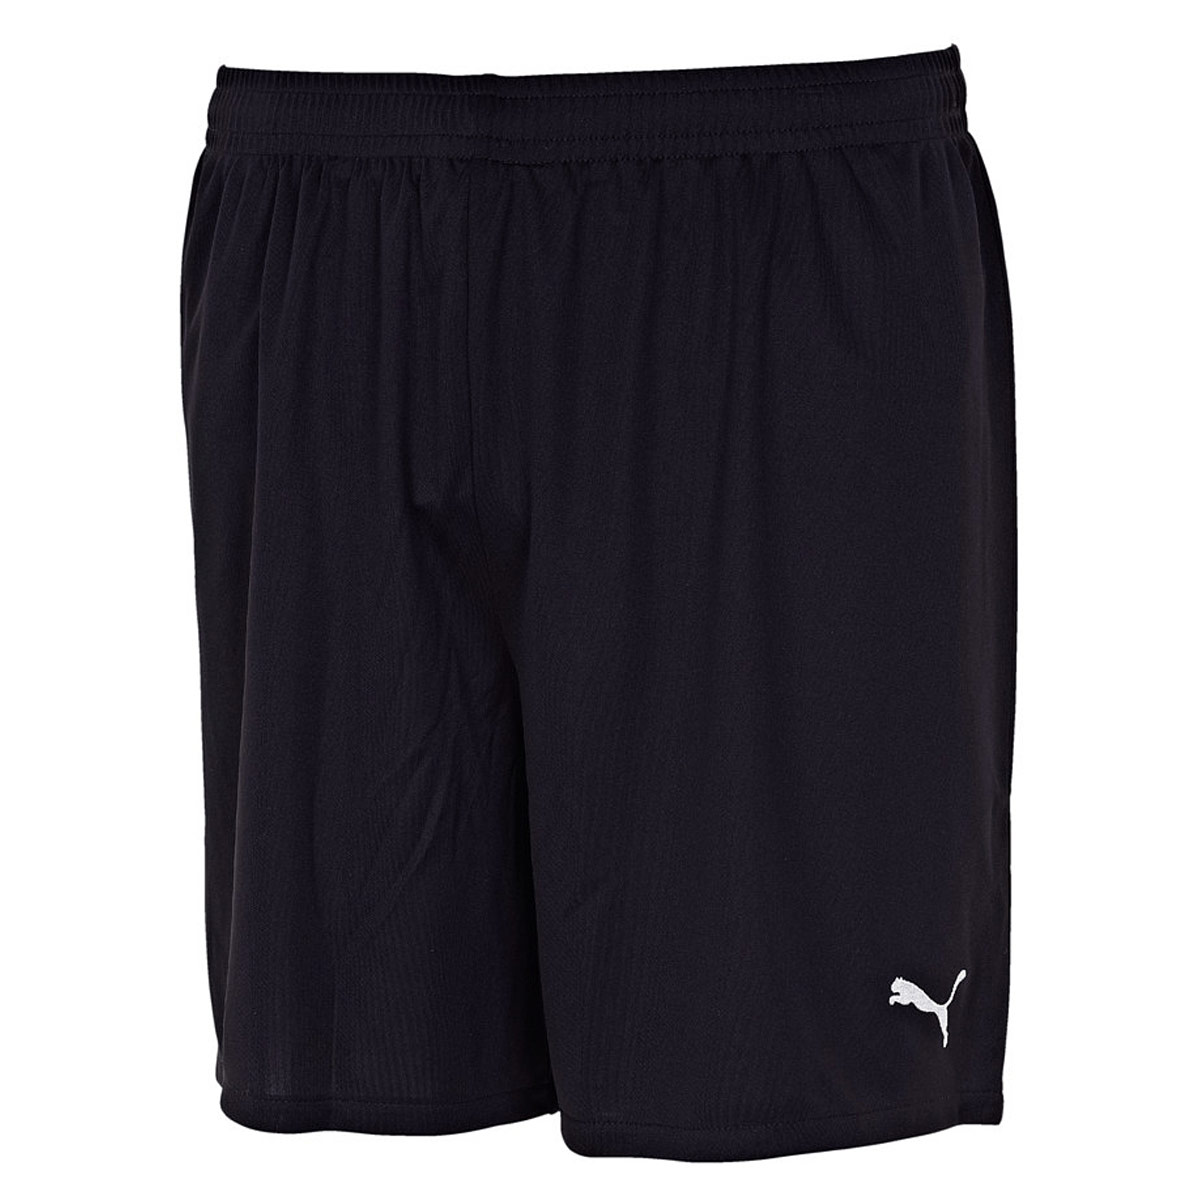 ff9d2c04bb74 Puma Velize Shorts W.out Inner Slip - Fitness trousers for Men - Black